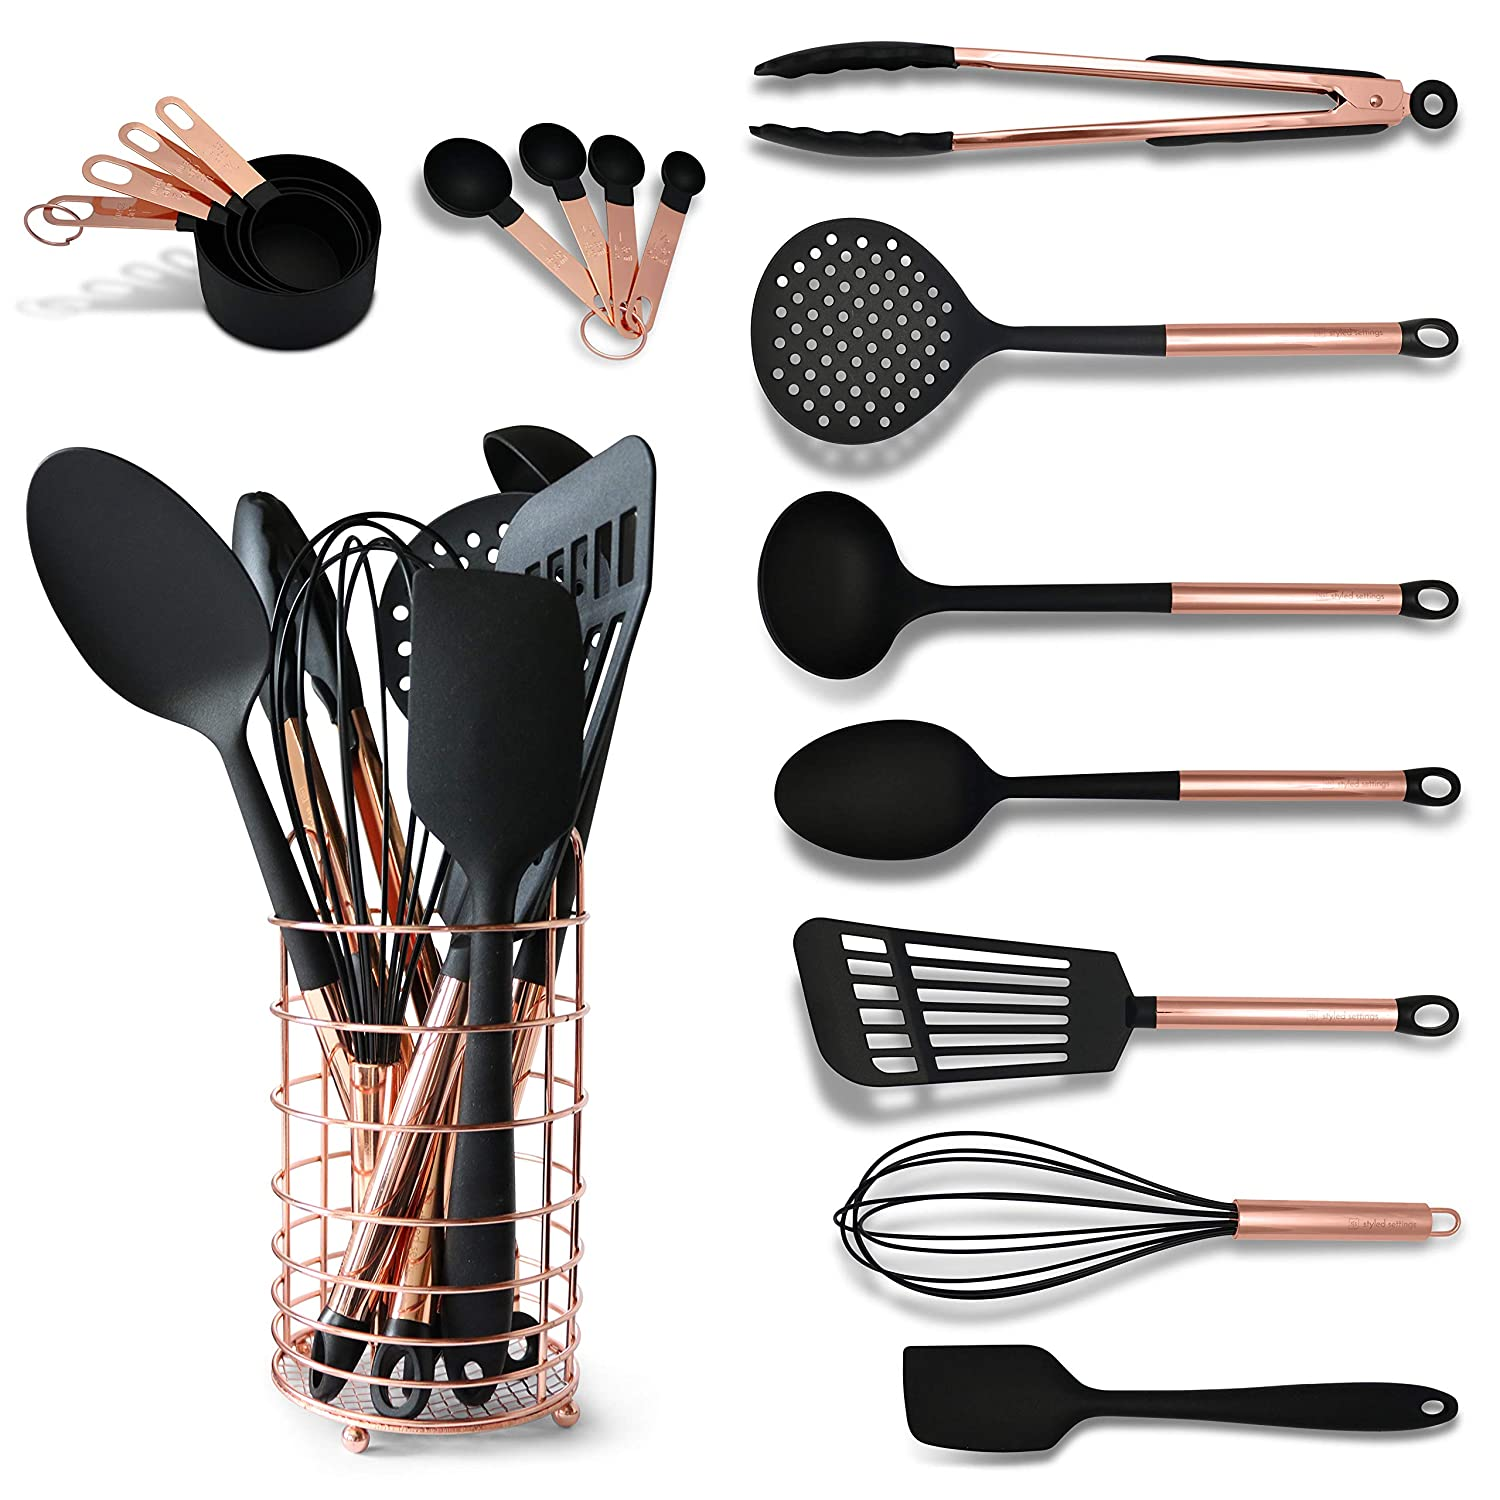 Black and Copper Cooking Utensils with Stainless Steel Copper Utensil Holder - Set Includes Black and Copper Measuring Spoons, Black and Copper Measuring Cups